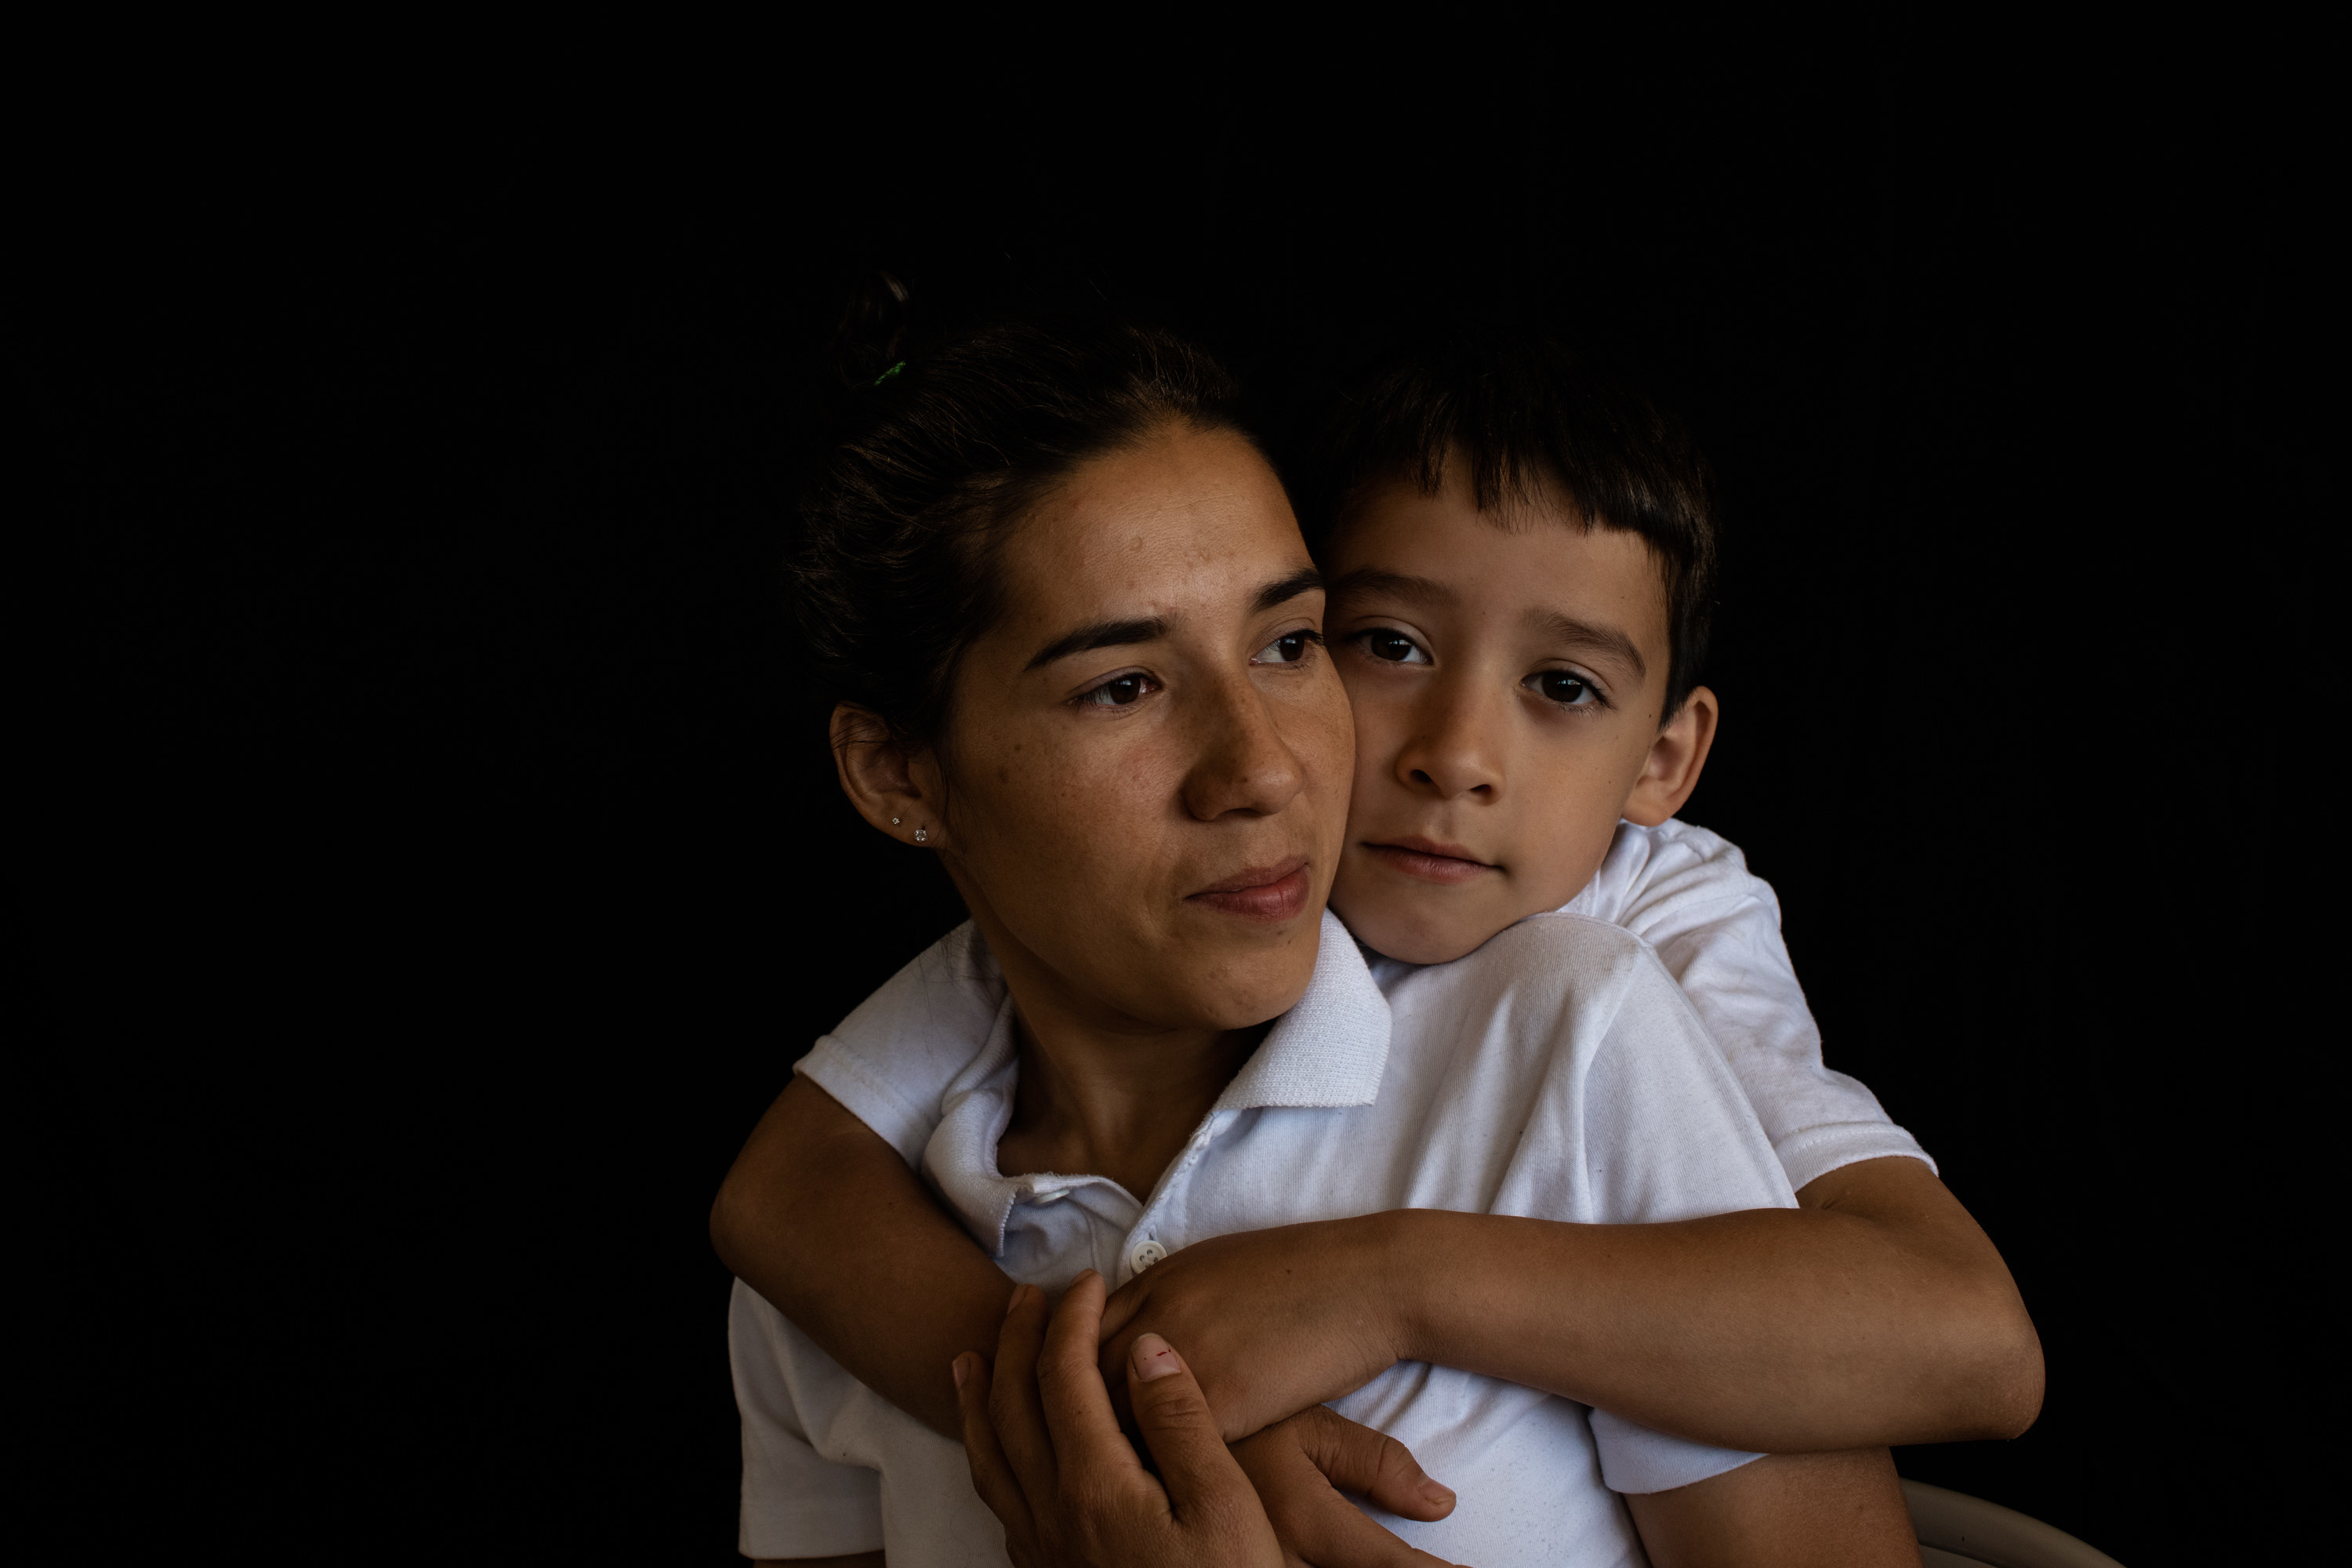 A sitting woman is held by her son, who stands behind her and embraces her